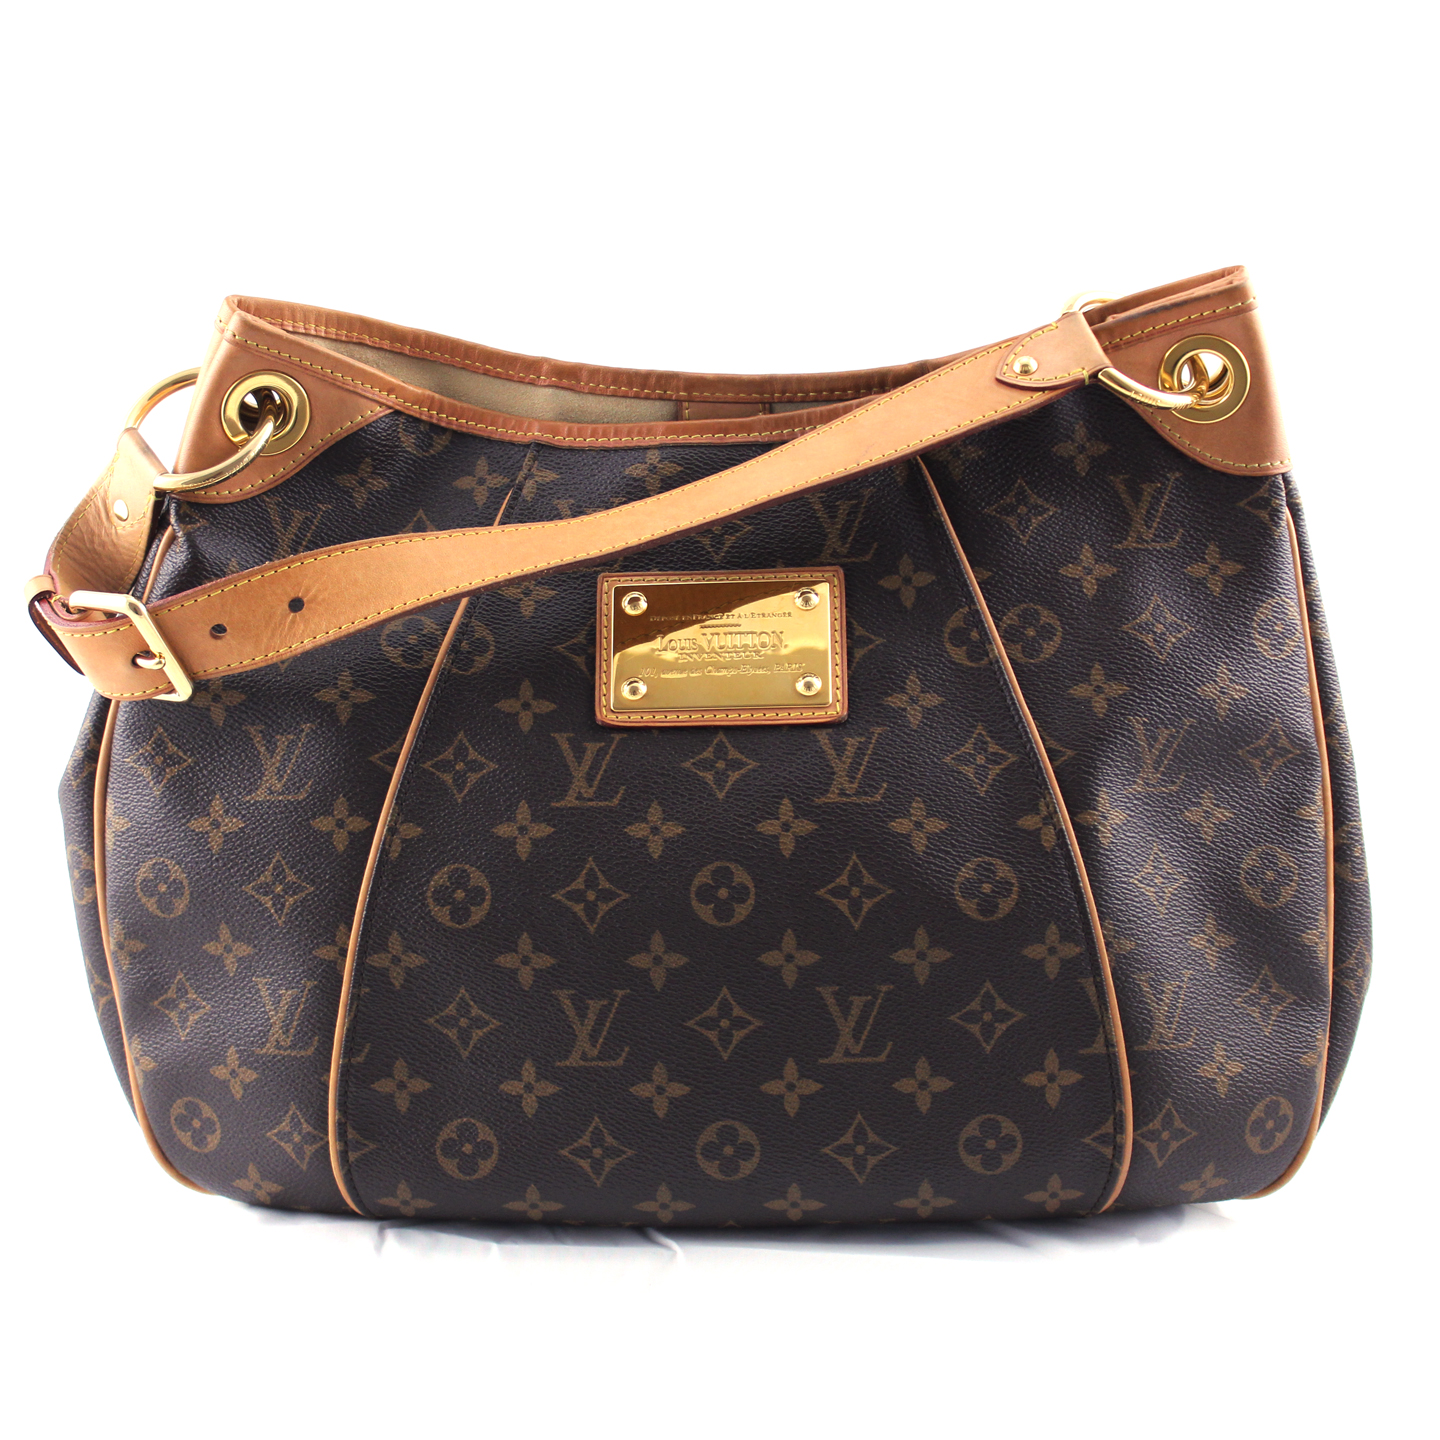 Sell Designer Handbags Inland Empire